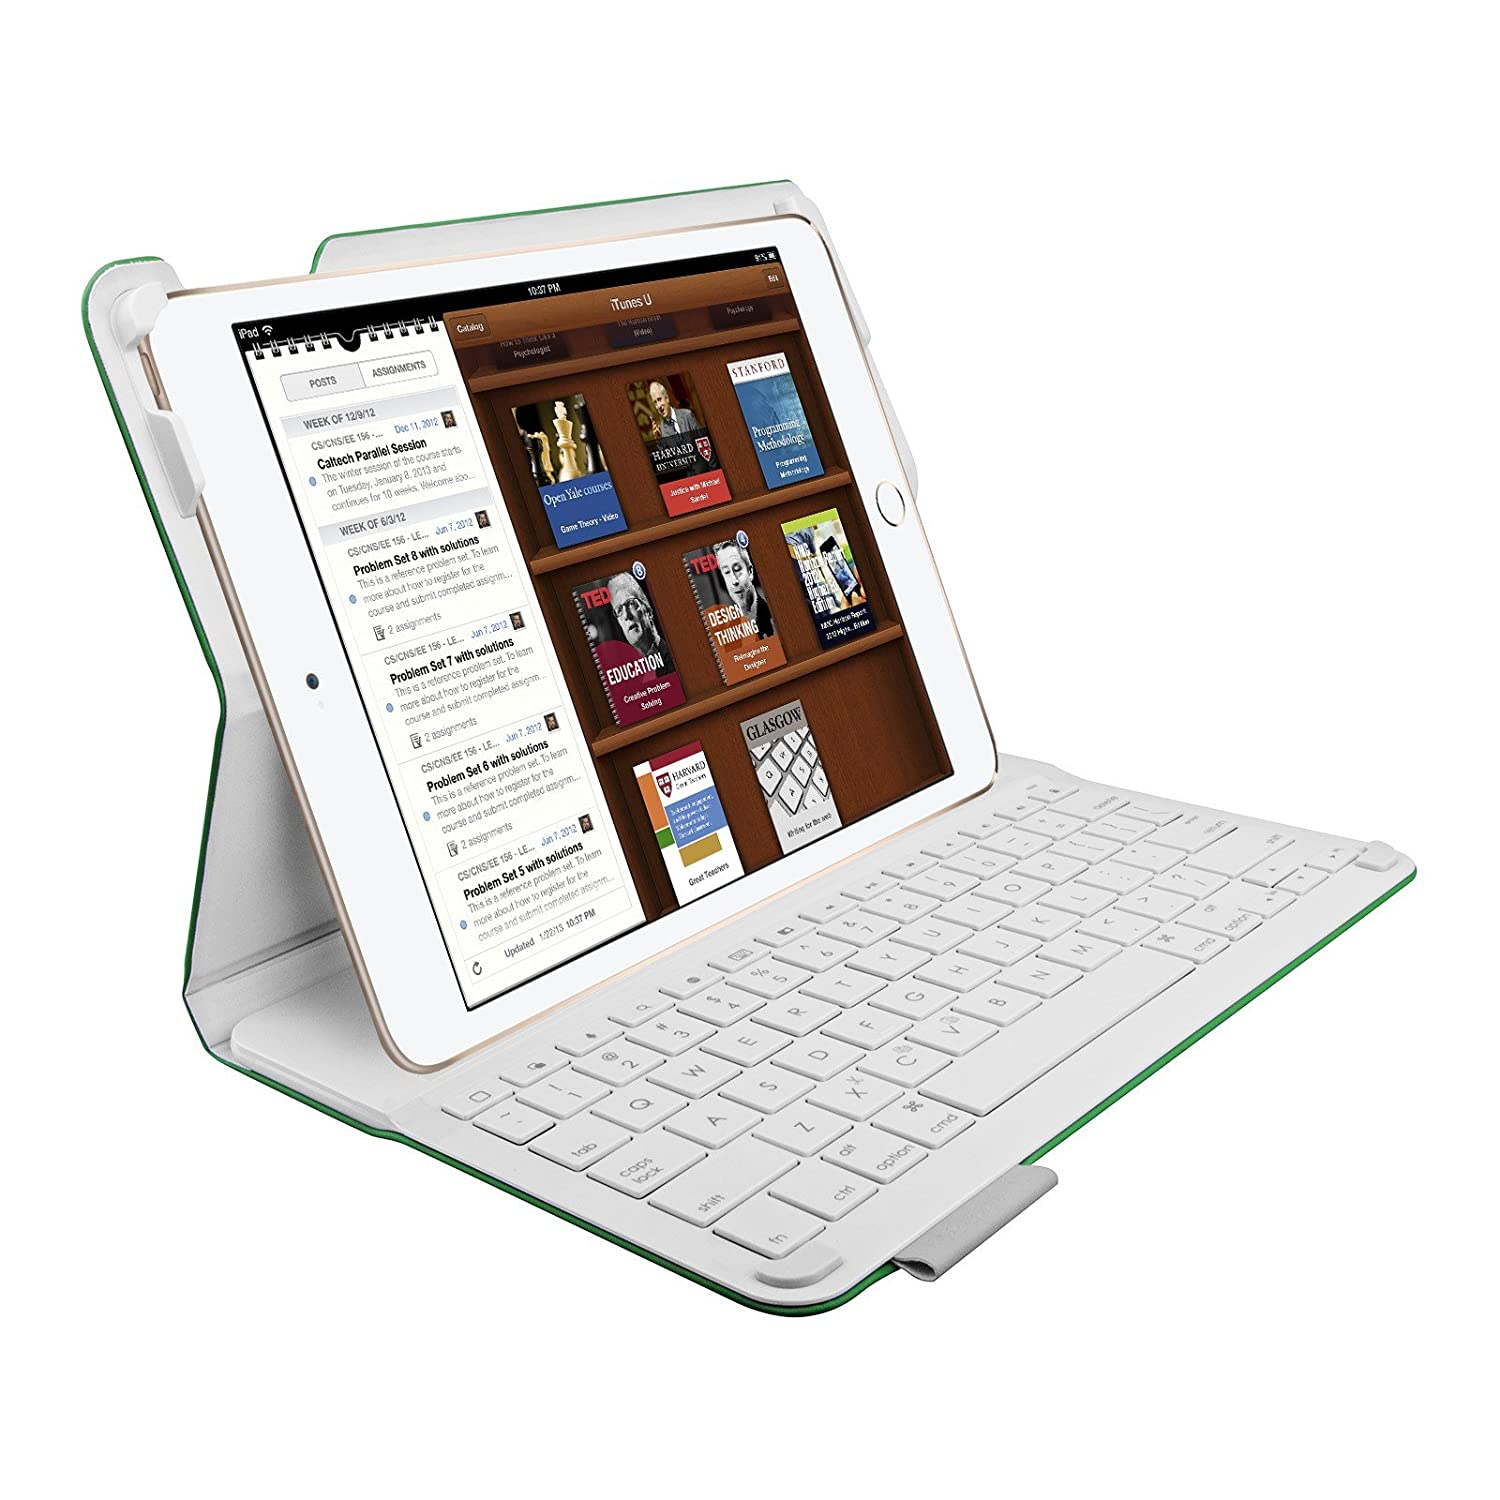 new concept 4fd0f 04494 Amazon.com: Logitech Type+ Bluetooth Keyboard Case for iPad Air 2 ...